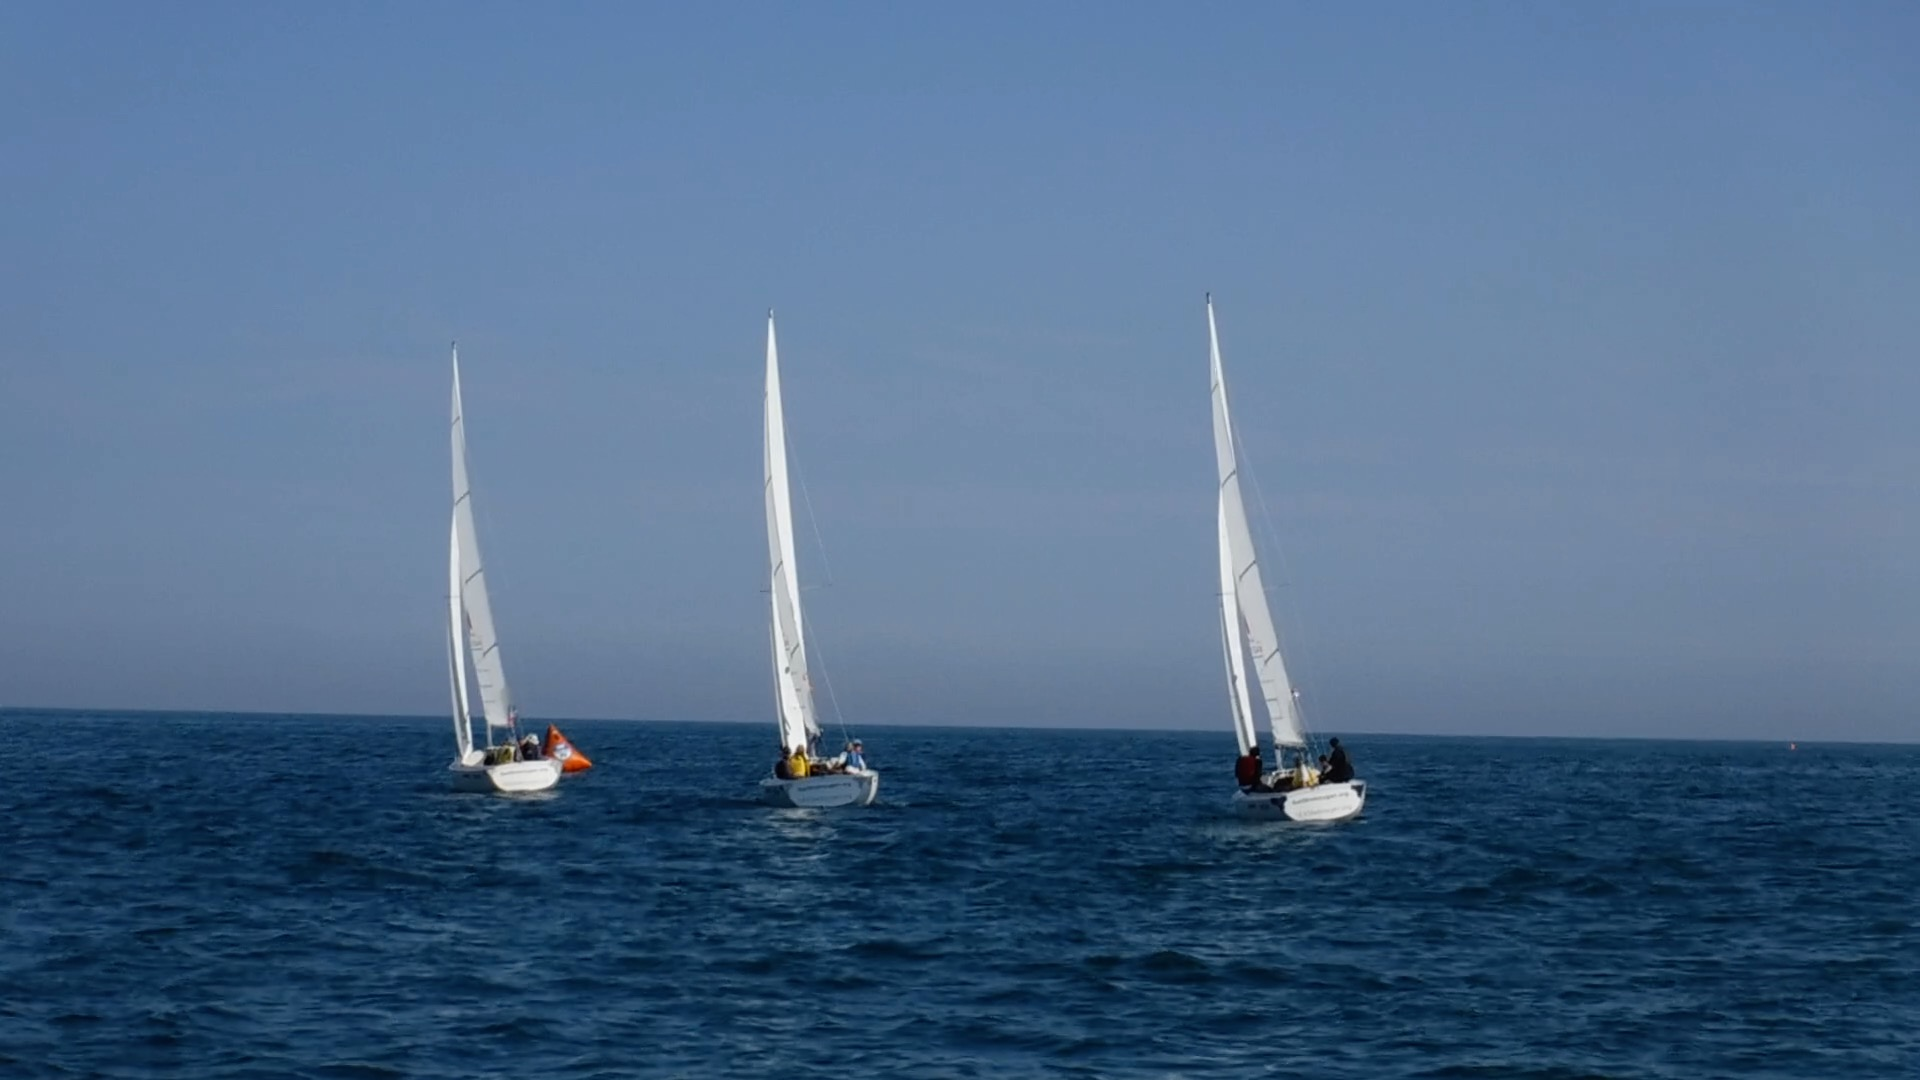 Three sailing boats very close together